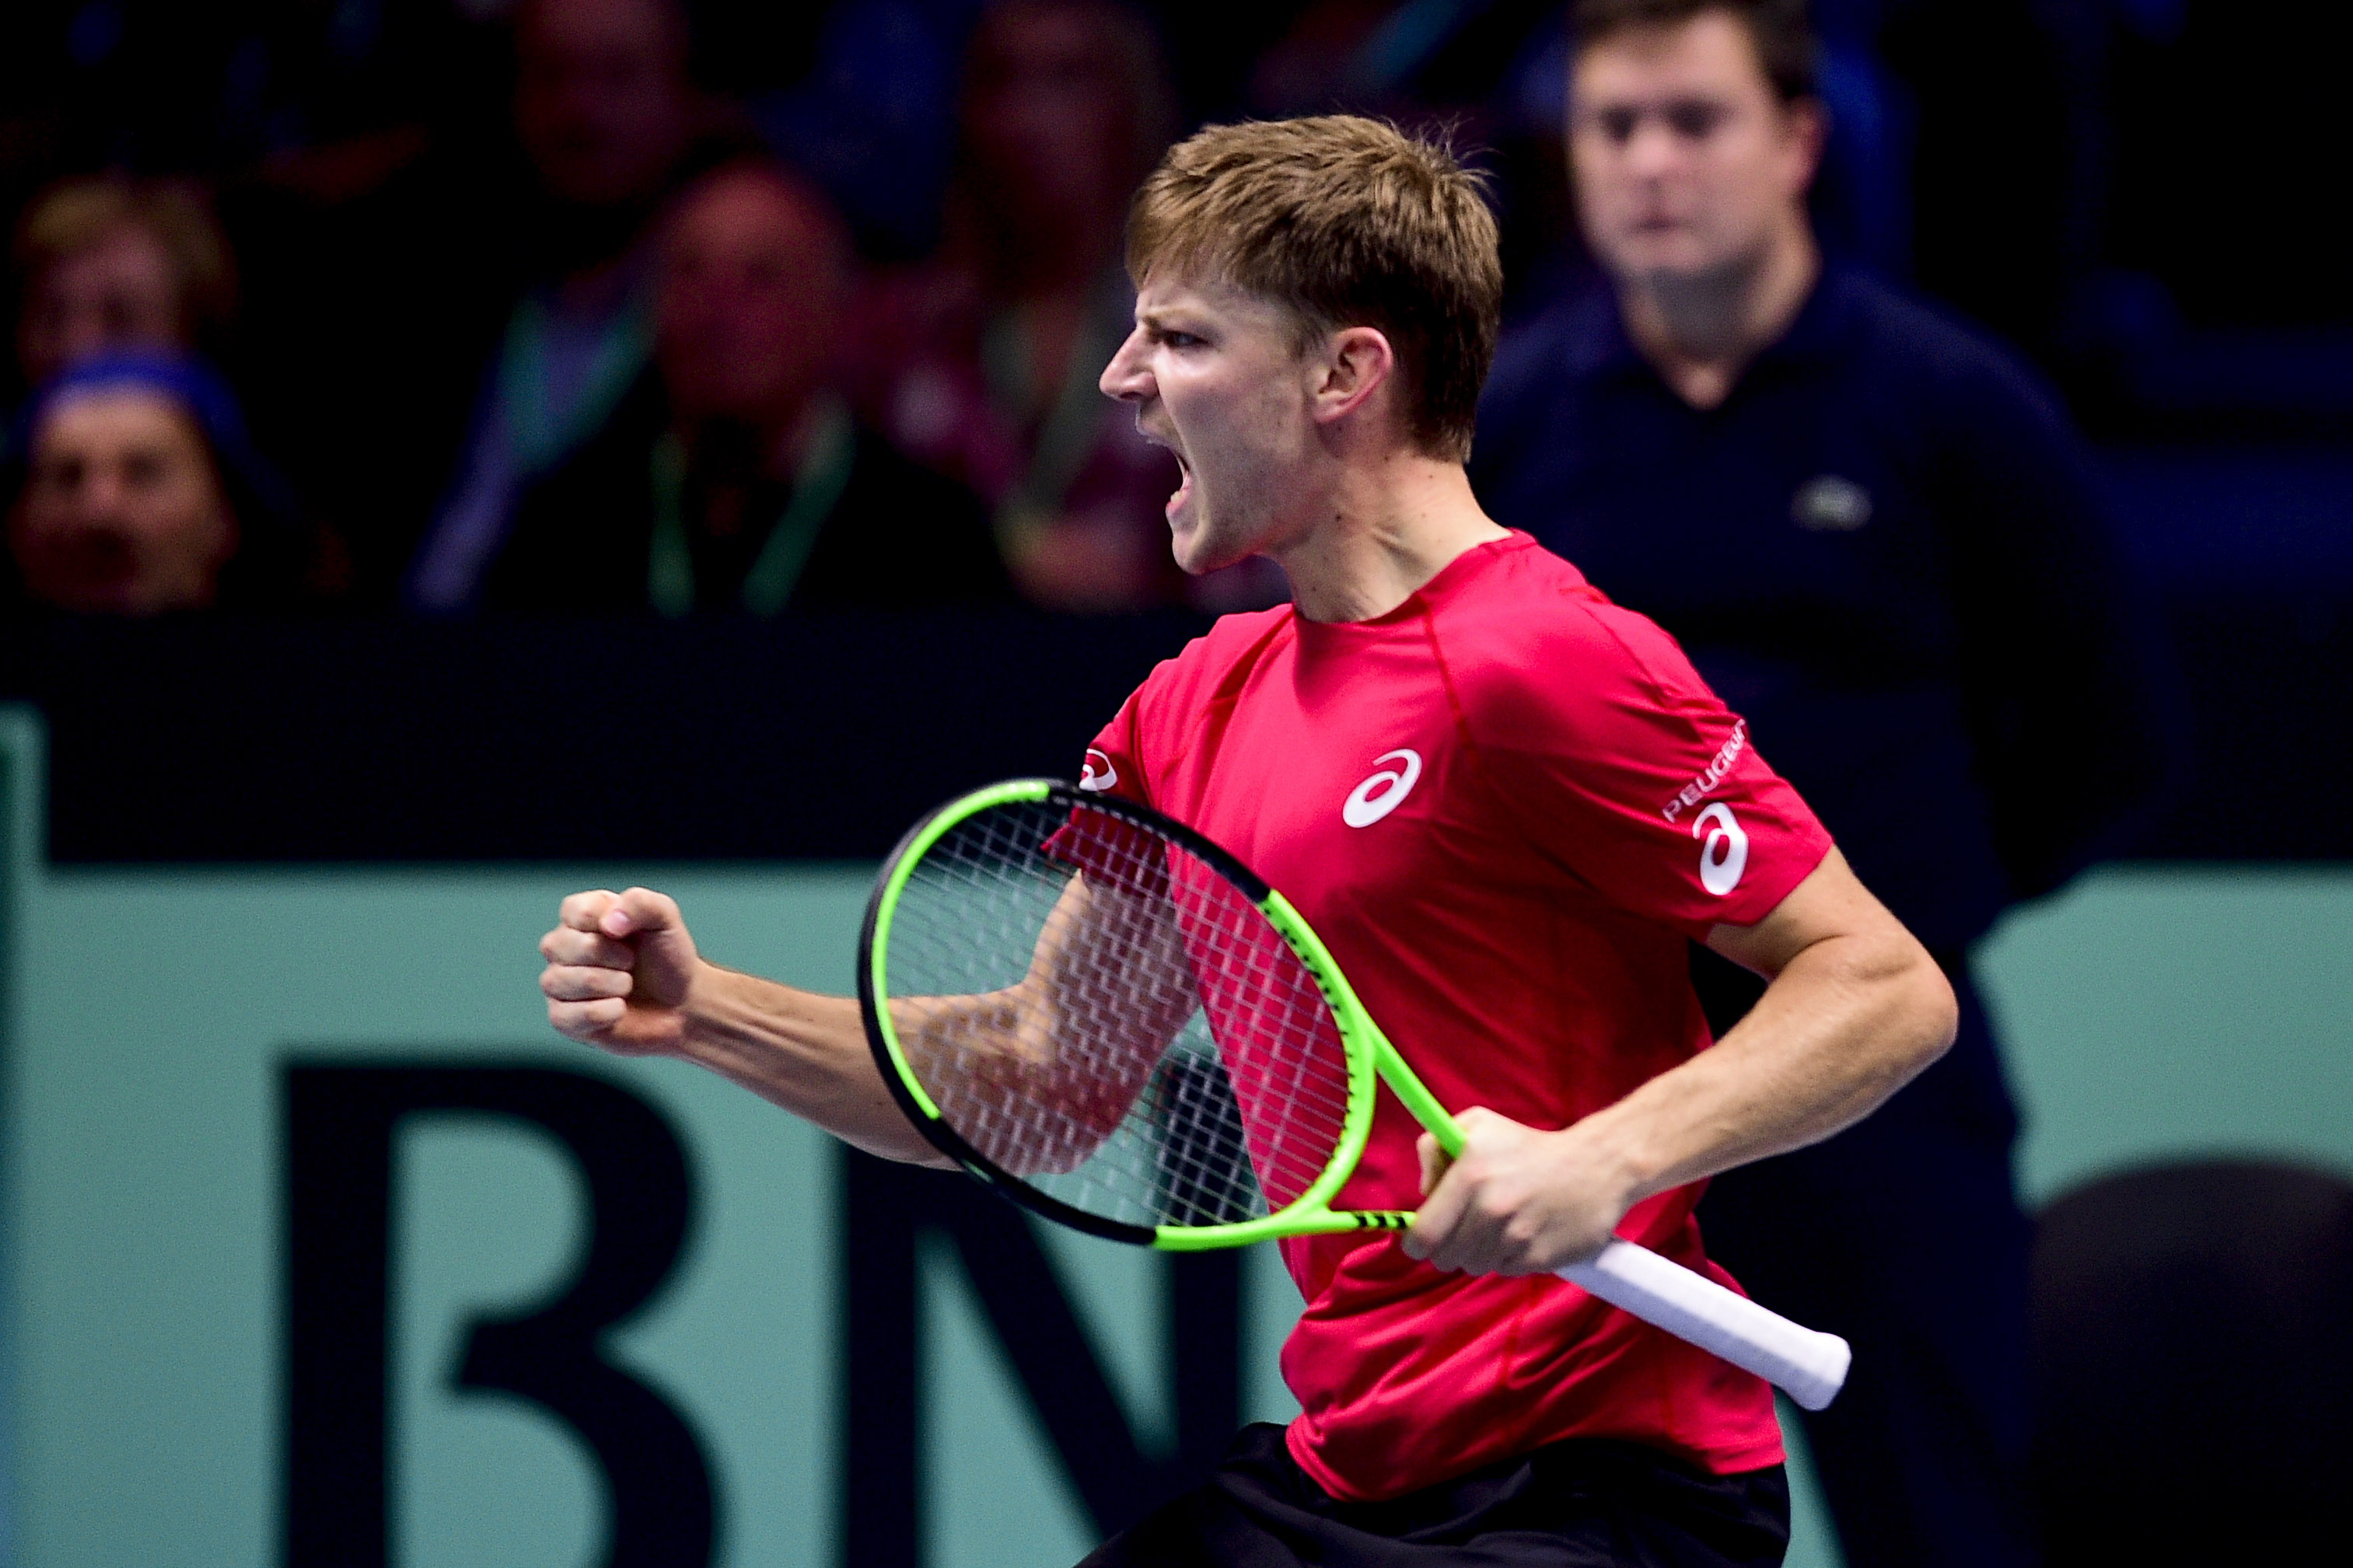 Tennis - Coupe Davis - David Goffin, la menace en 3 points